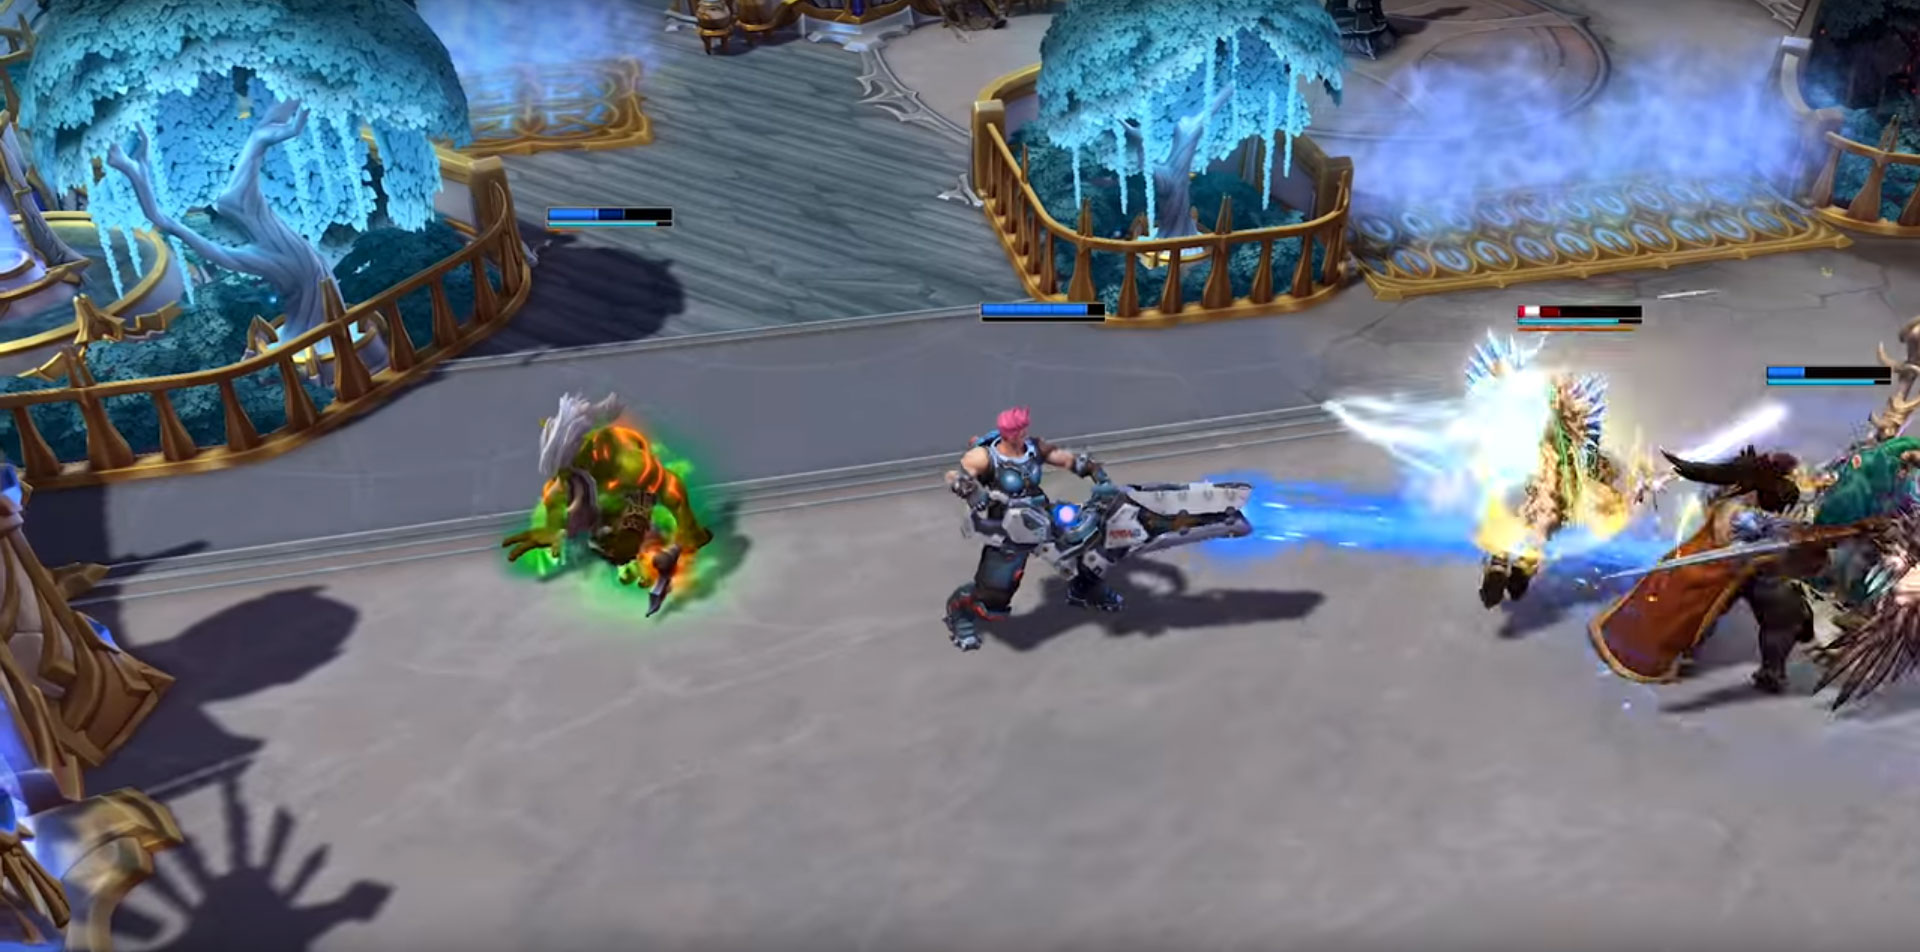 Zul'jin dans Heroes of the Storm.